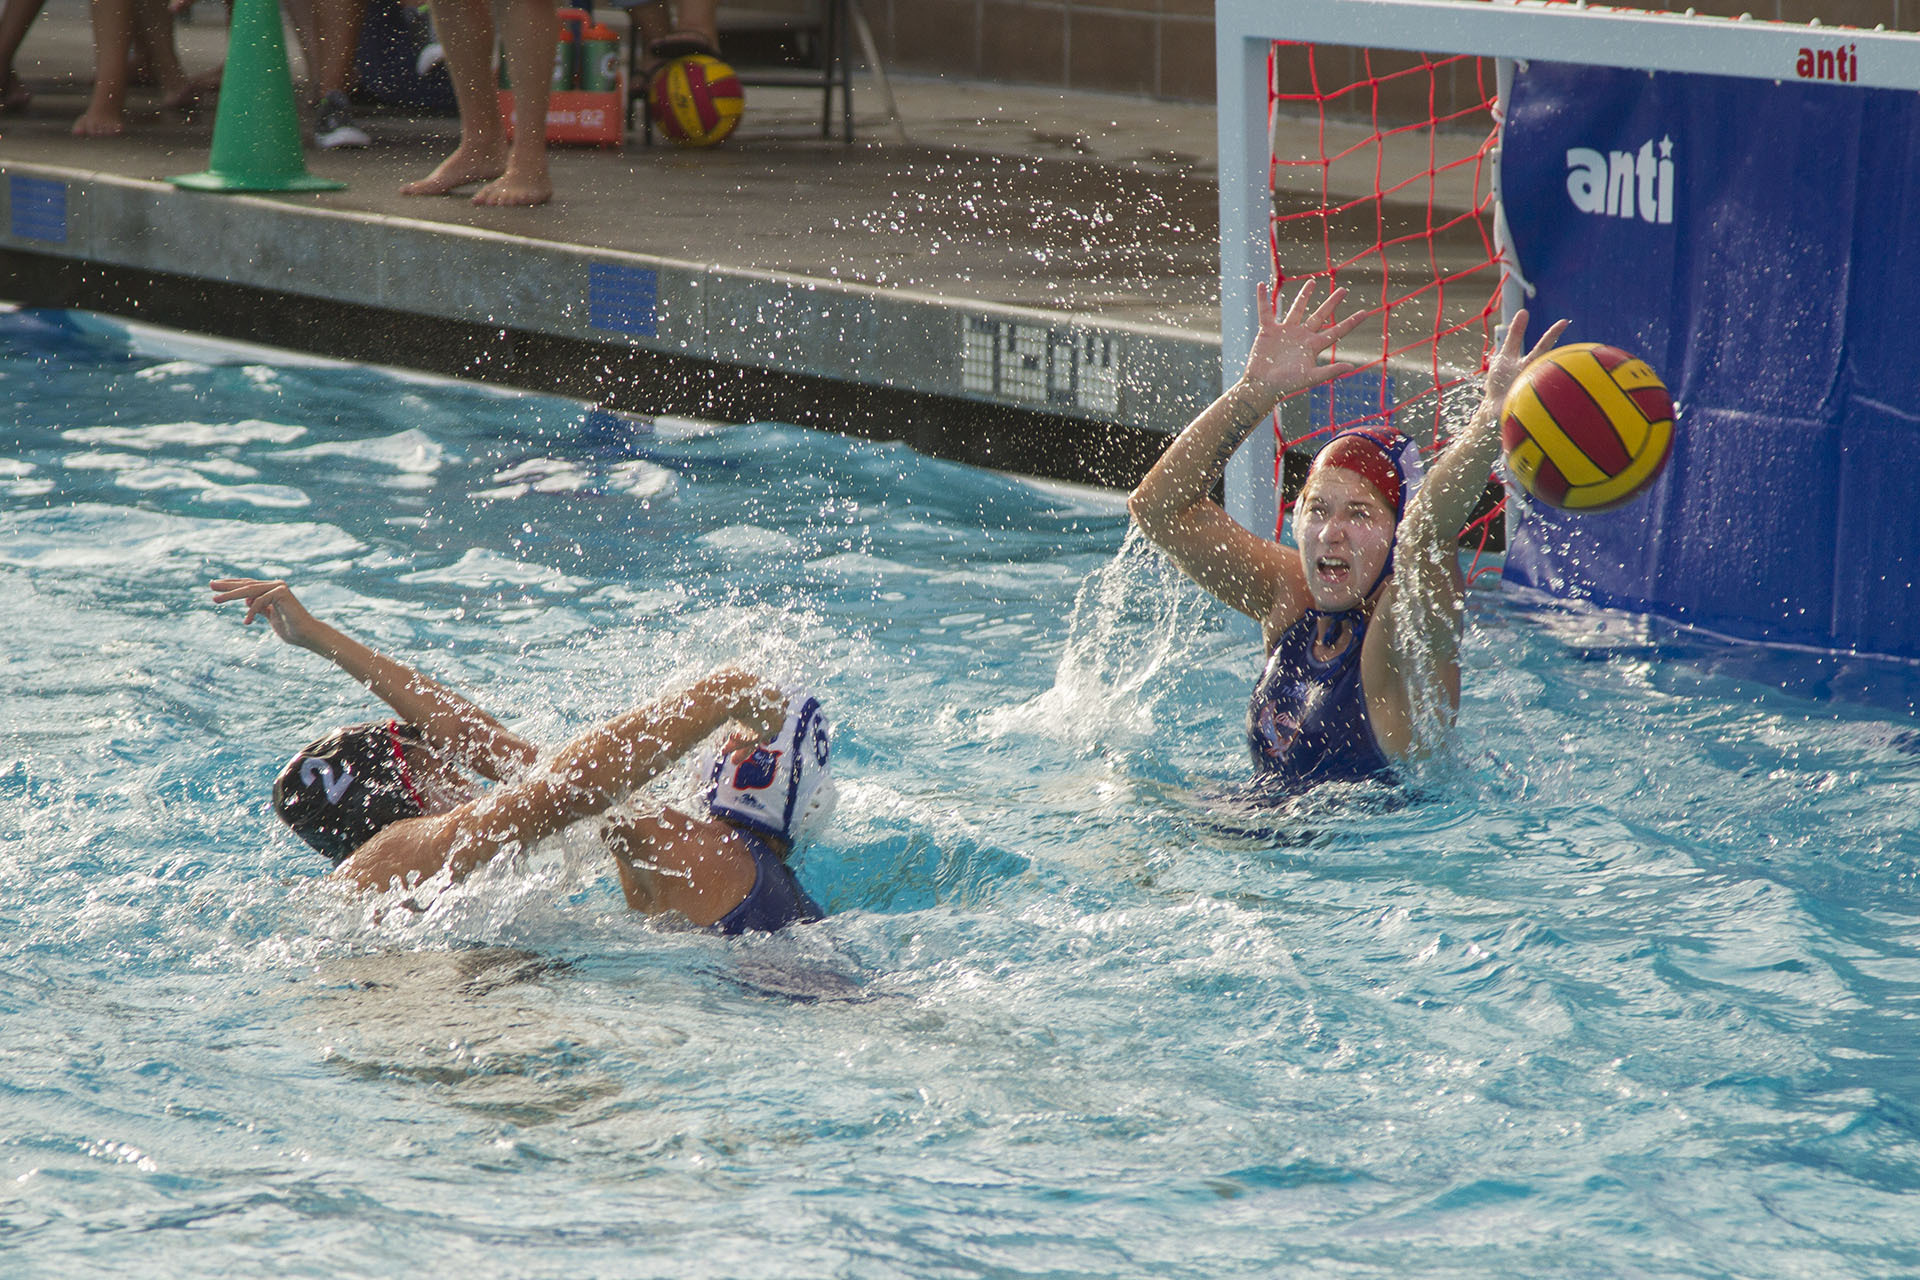 Santa Barbara City College Vaquero, Ivana Bilaver (No. 2) scores against Citrus College Owls, (from left) Gabriella Galbraith, and Delaney Moller on Wednesday, Sept. 21, at San Marcos High School. The Vaqueros defeated the Owls, 11-4 and Bilaver scored 4 of the 8 winning goals.